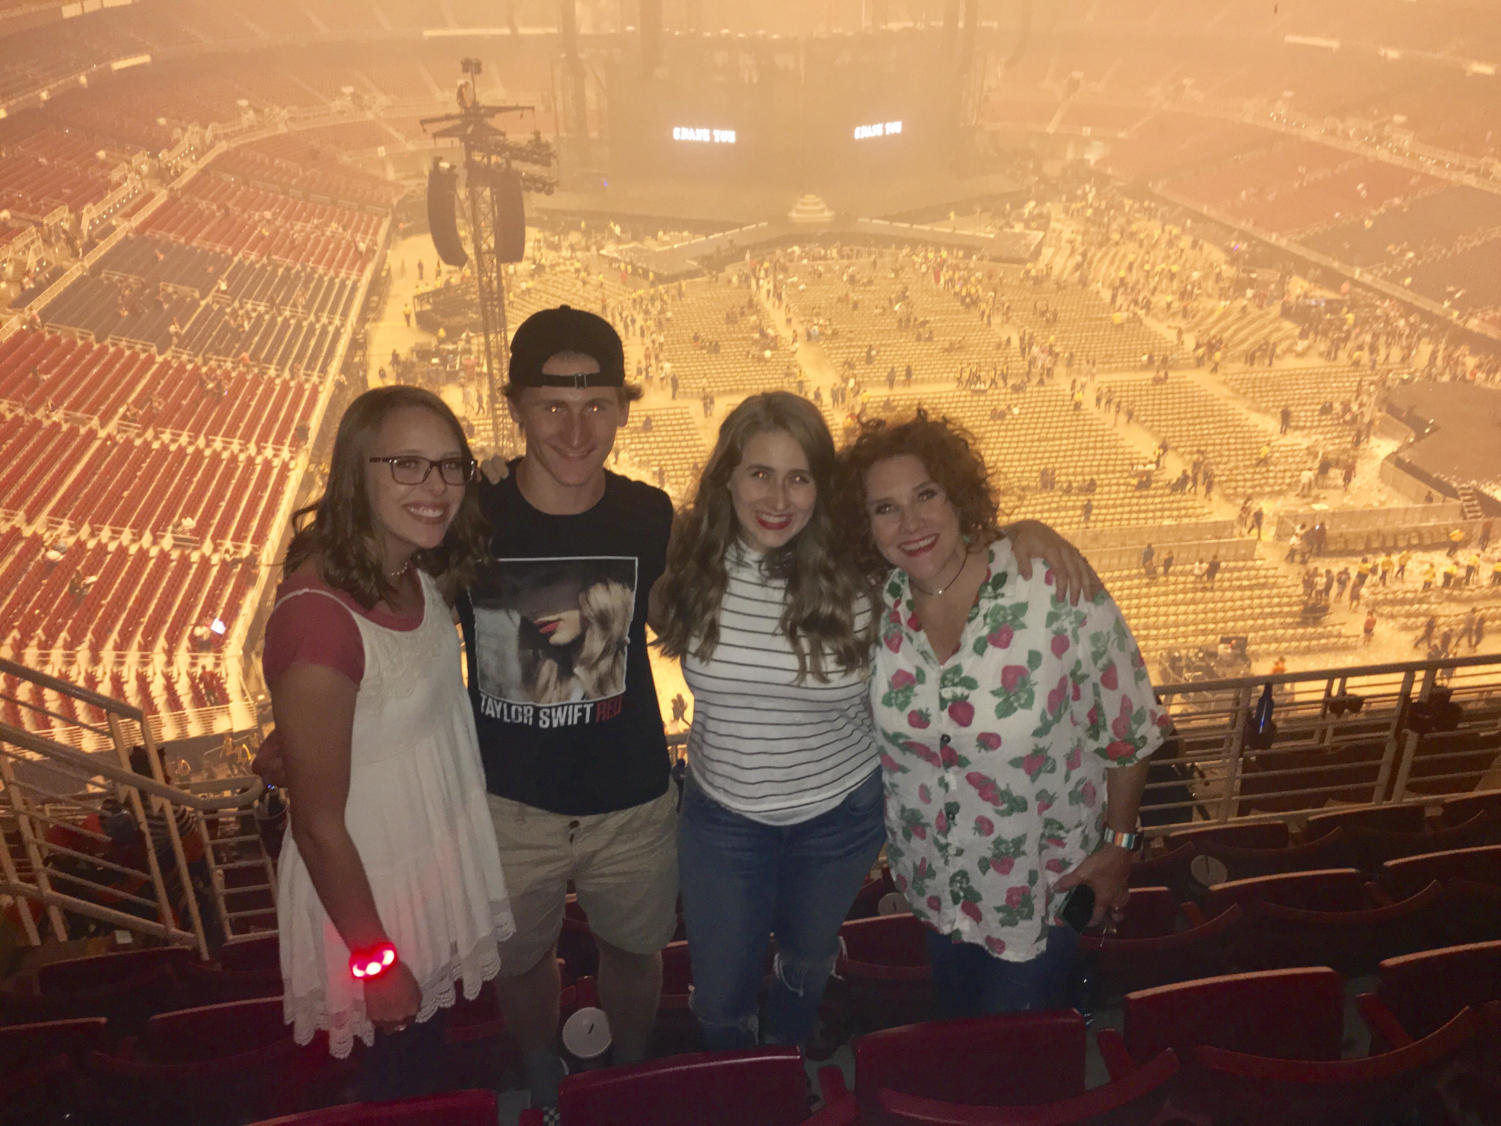 Madilynn Kipp poses with family friends before the Reputation Stadium Tour in St. Louis, Tuesday, Sept. 18.